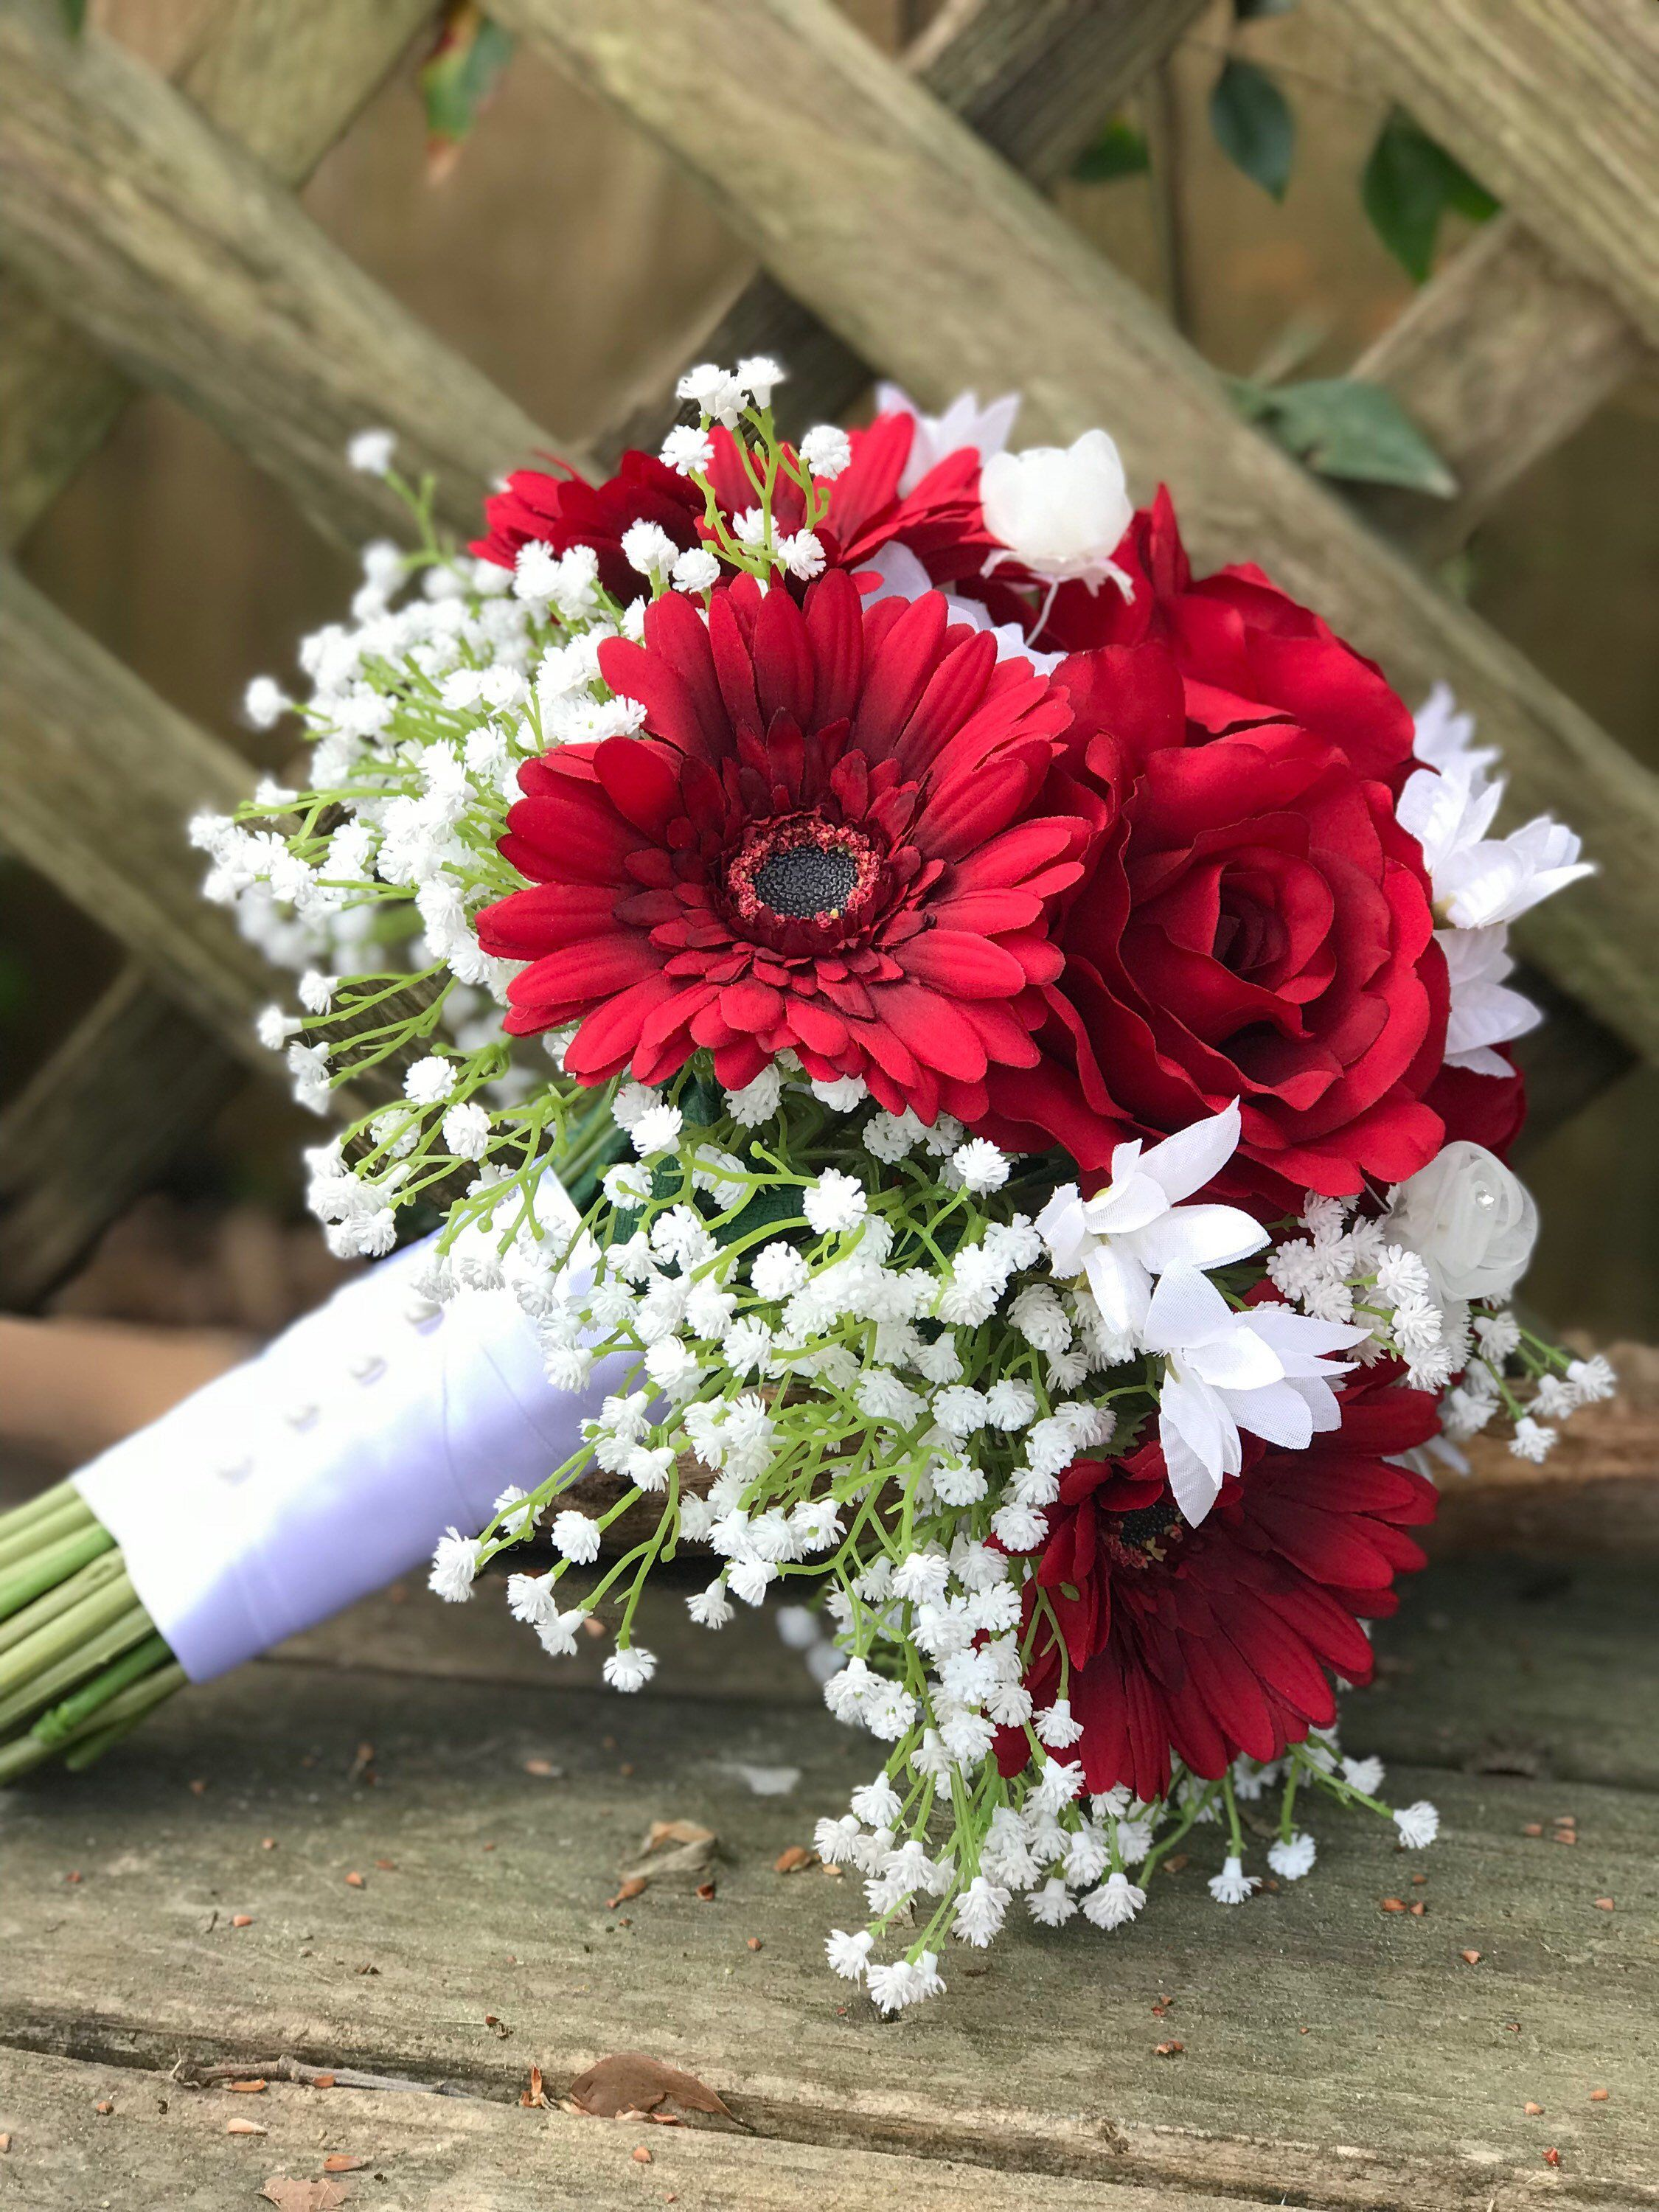 Red Rose Gerbera Daisy Wedding Bouquet With Images Daisy